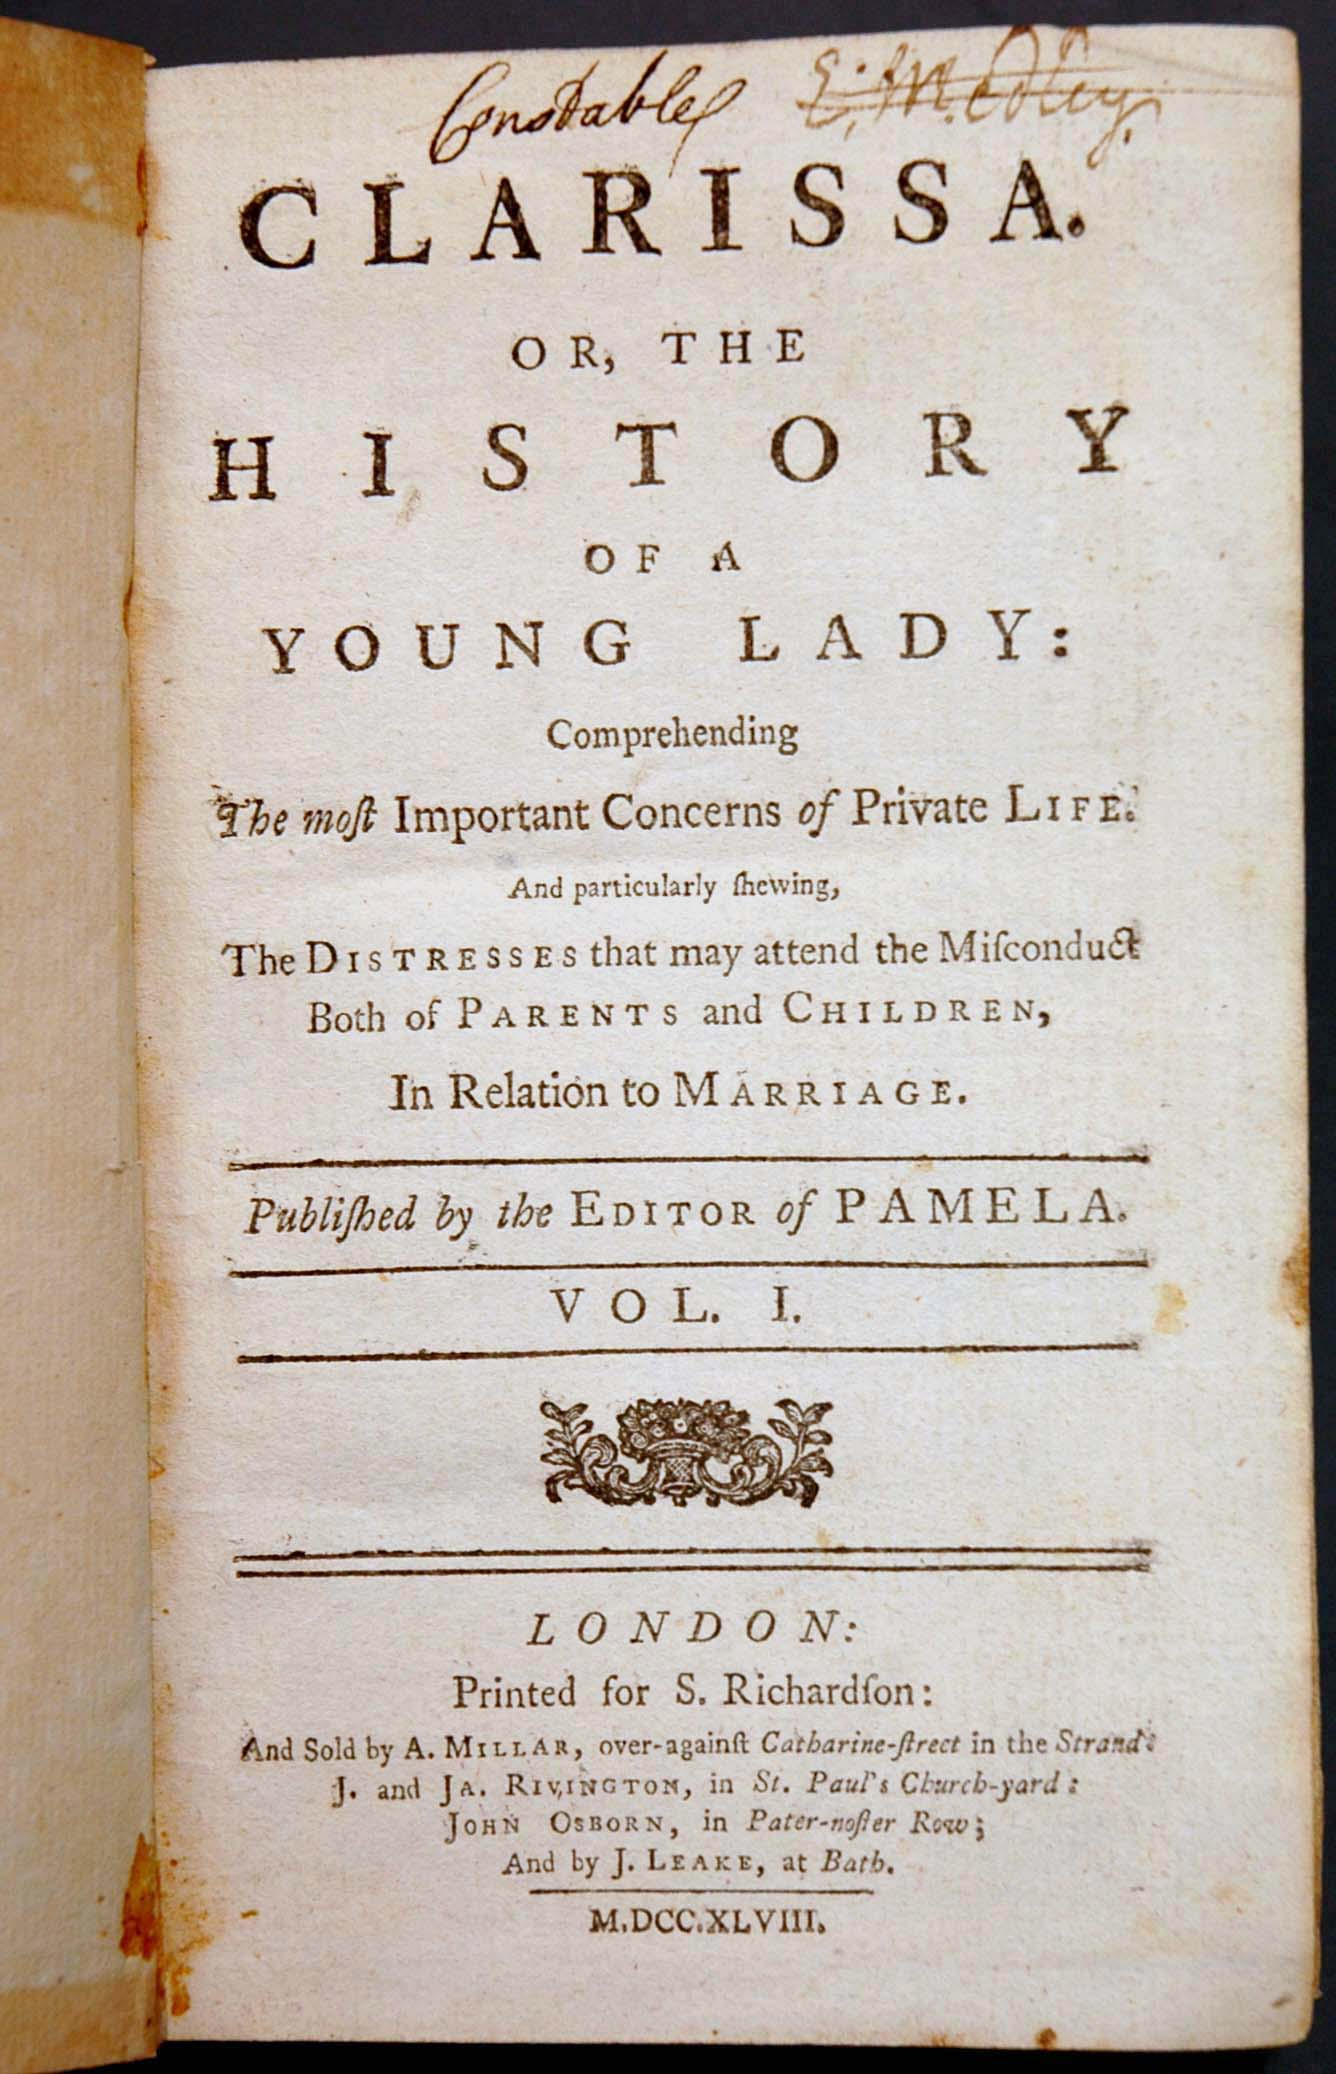 an analysis of the epistolary novel clarissa by samuel richardson A general summary the novel starts showing us the situation of pamela, an educated and polite fifteen years-old maid, whose lady has just died  pamelaor virtue rewarded, by samuel richardson posted on 16 january, 2011 by dámaris asprón a general summary  this technique will be later developed in his next work clarissa.